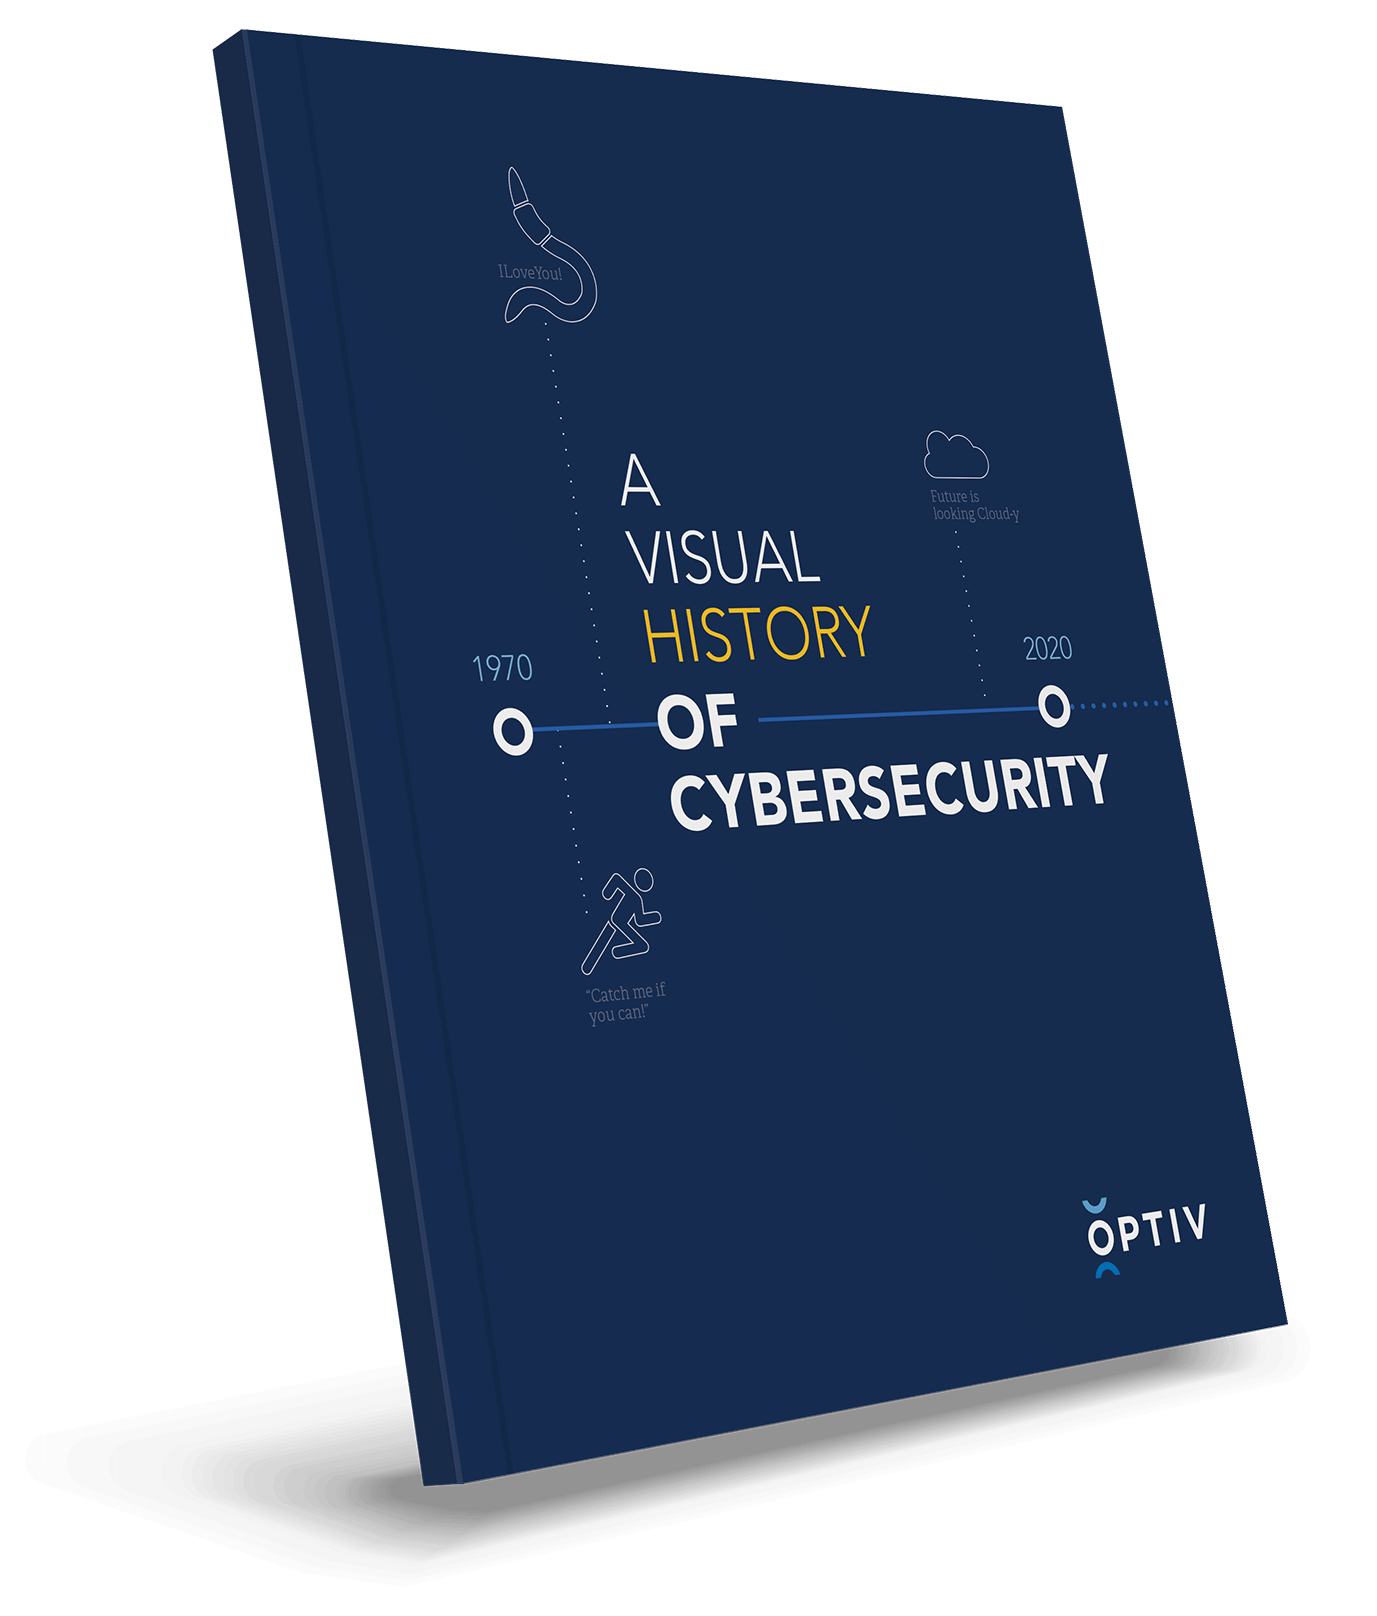 A Visual History of Cybersecurity Book Image